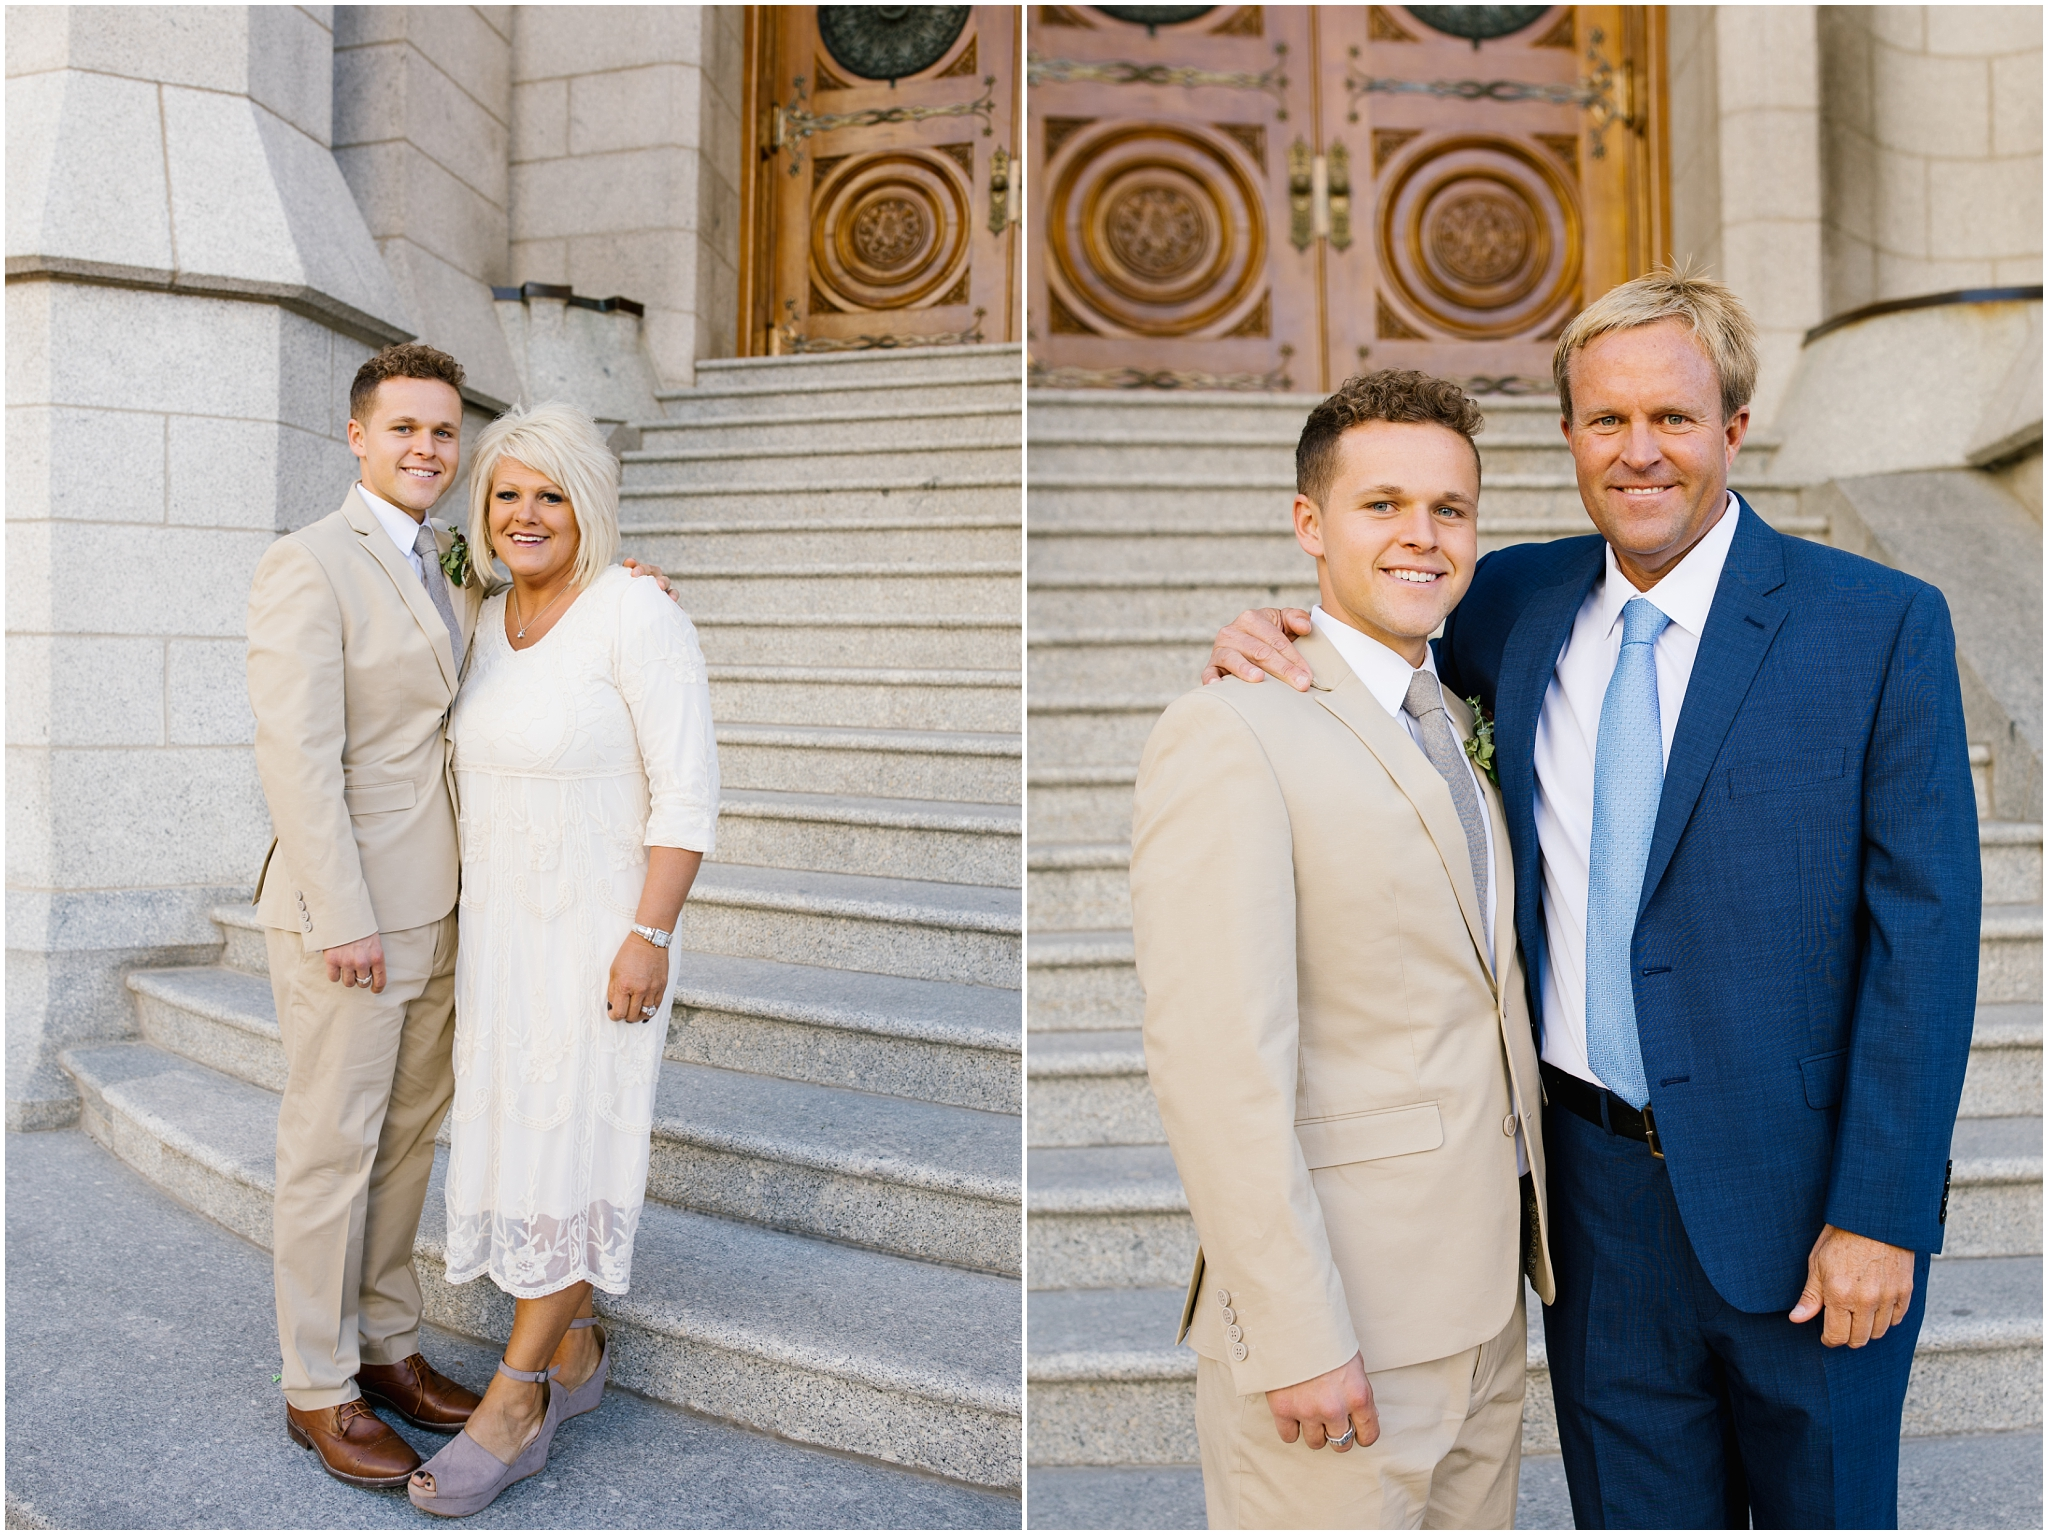 JC-Wedding-123_Lizzie-B-Imagery-Utah-Wedding-Photographer-Salt-Lake-City-Temple-Joseph-Smith-Memorial-Building-Reception.jpg